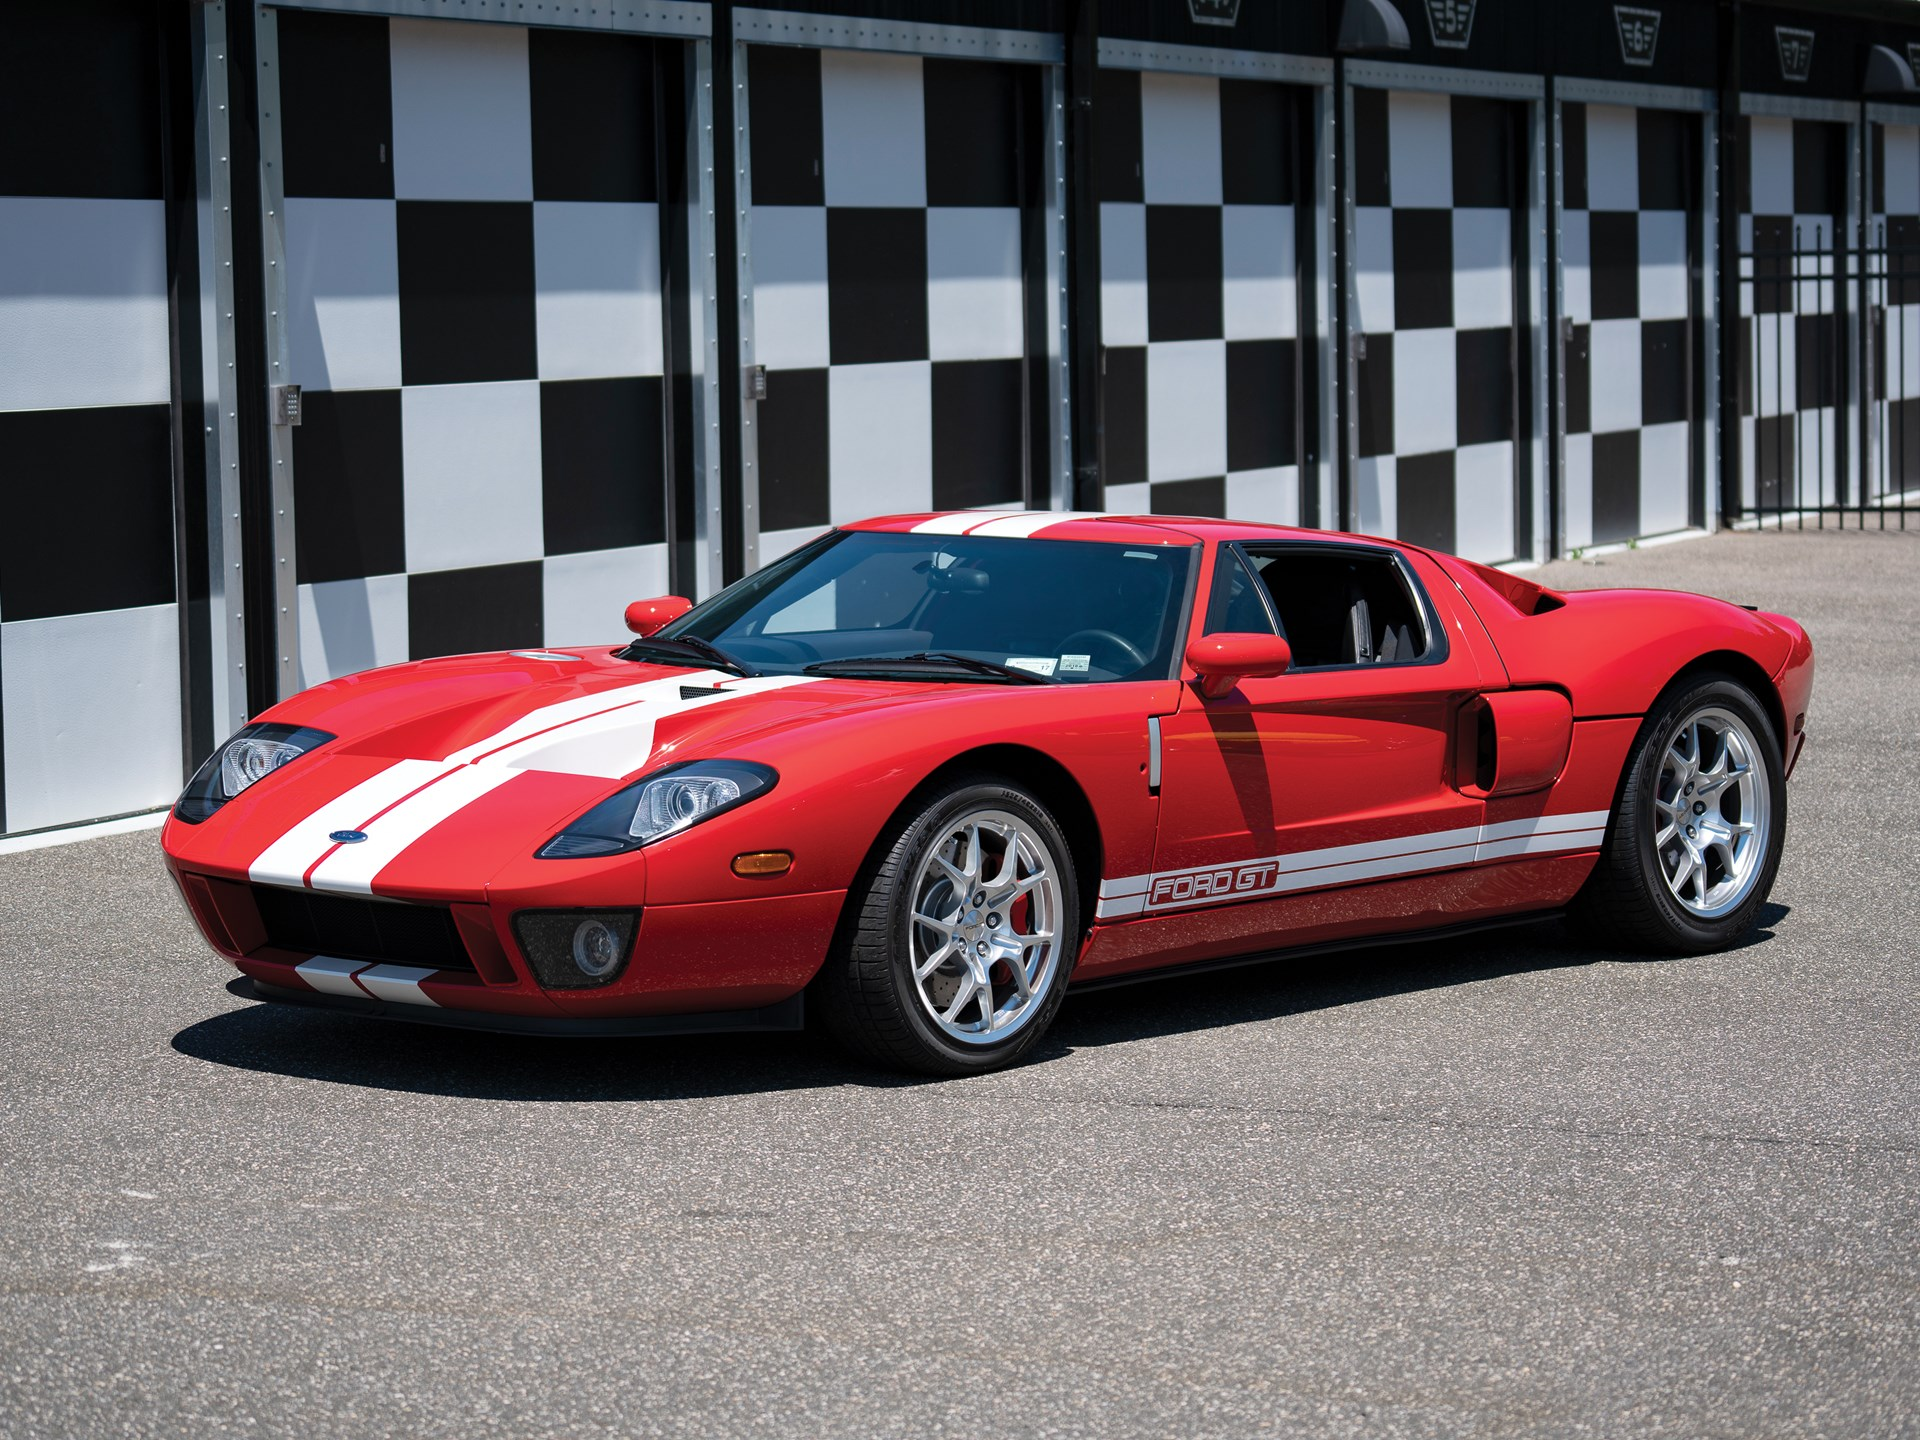 The 2005 06 Ford Gt Is On A Recent Hot Streak Hagerty Media